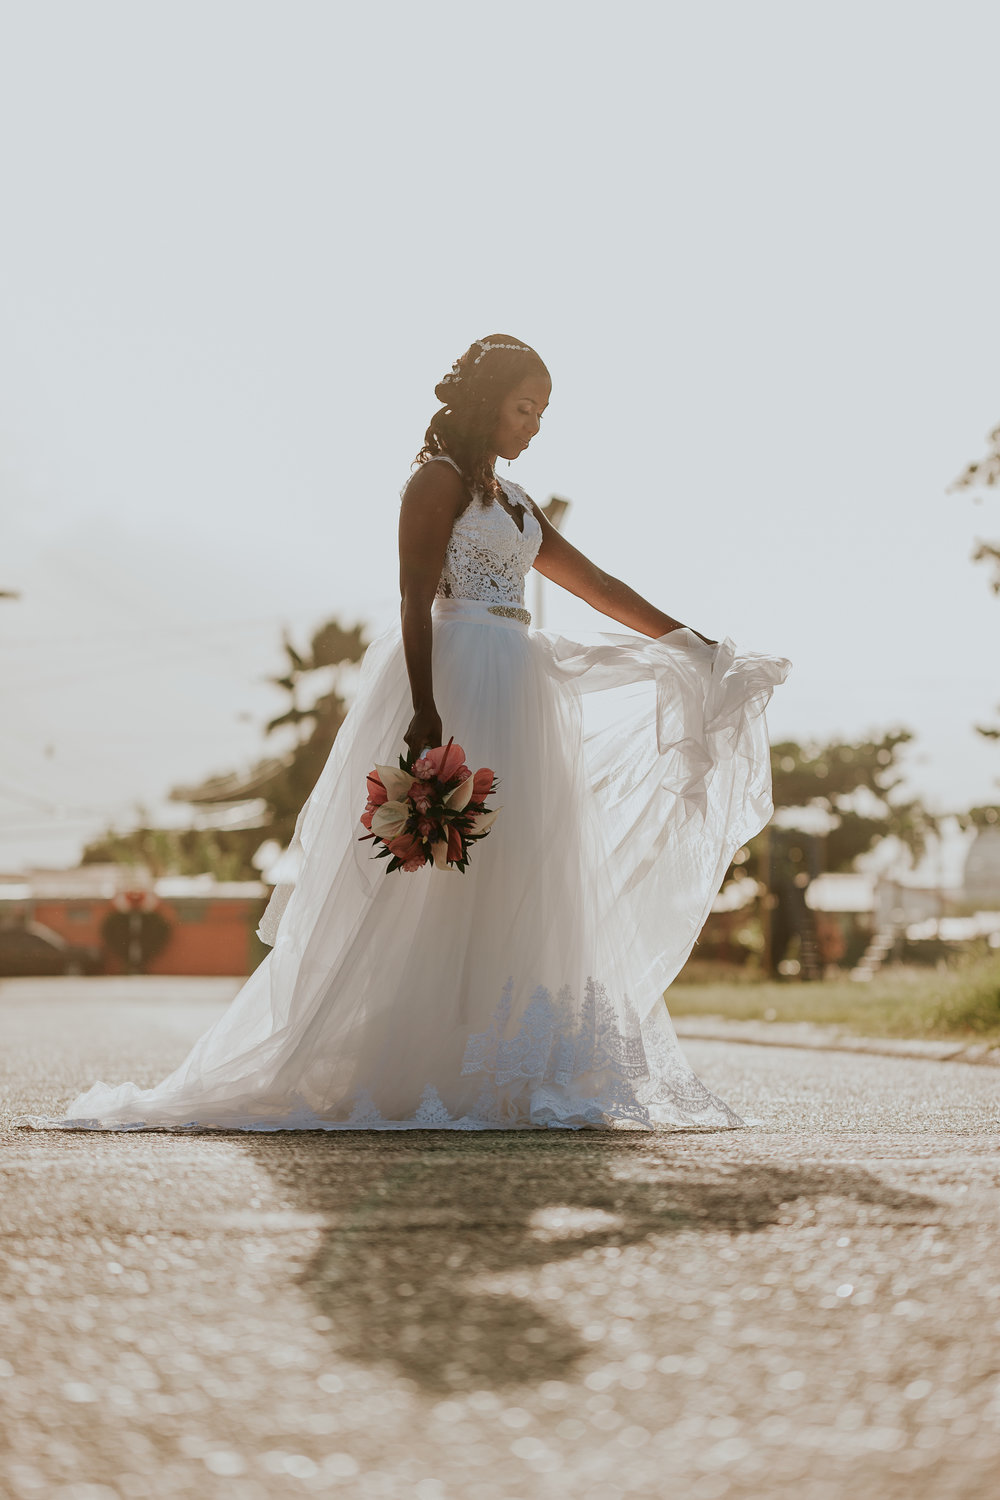 Our Wedding (The Mauge's')-5.jpg